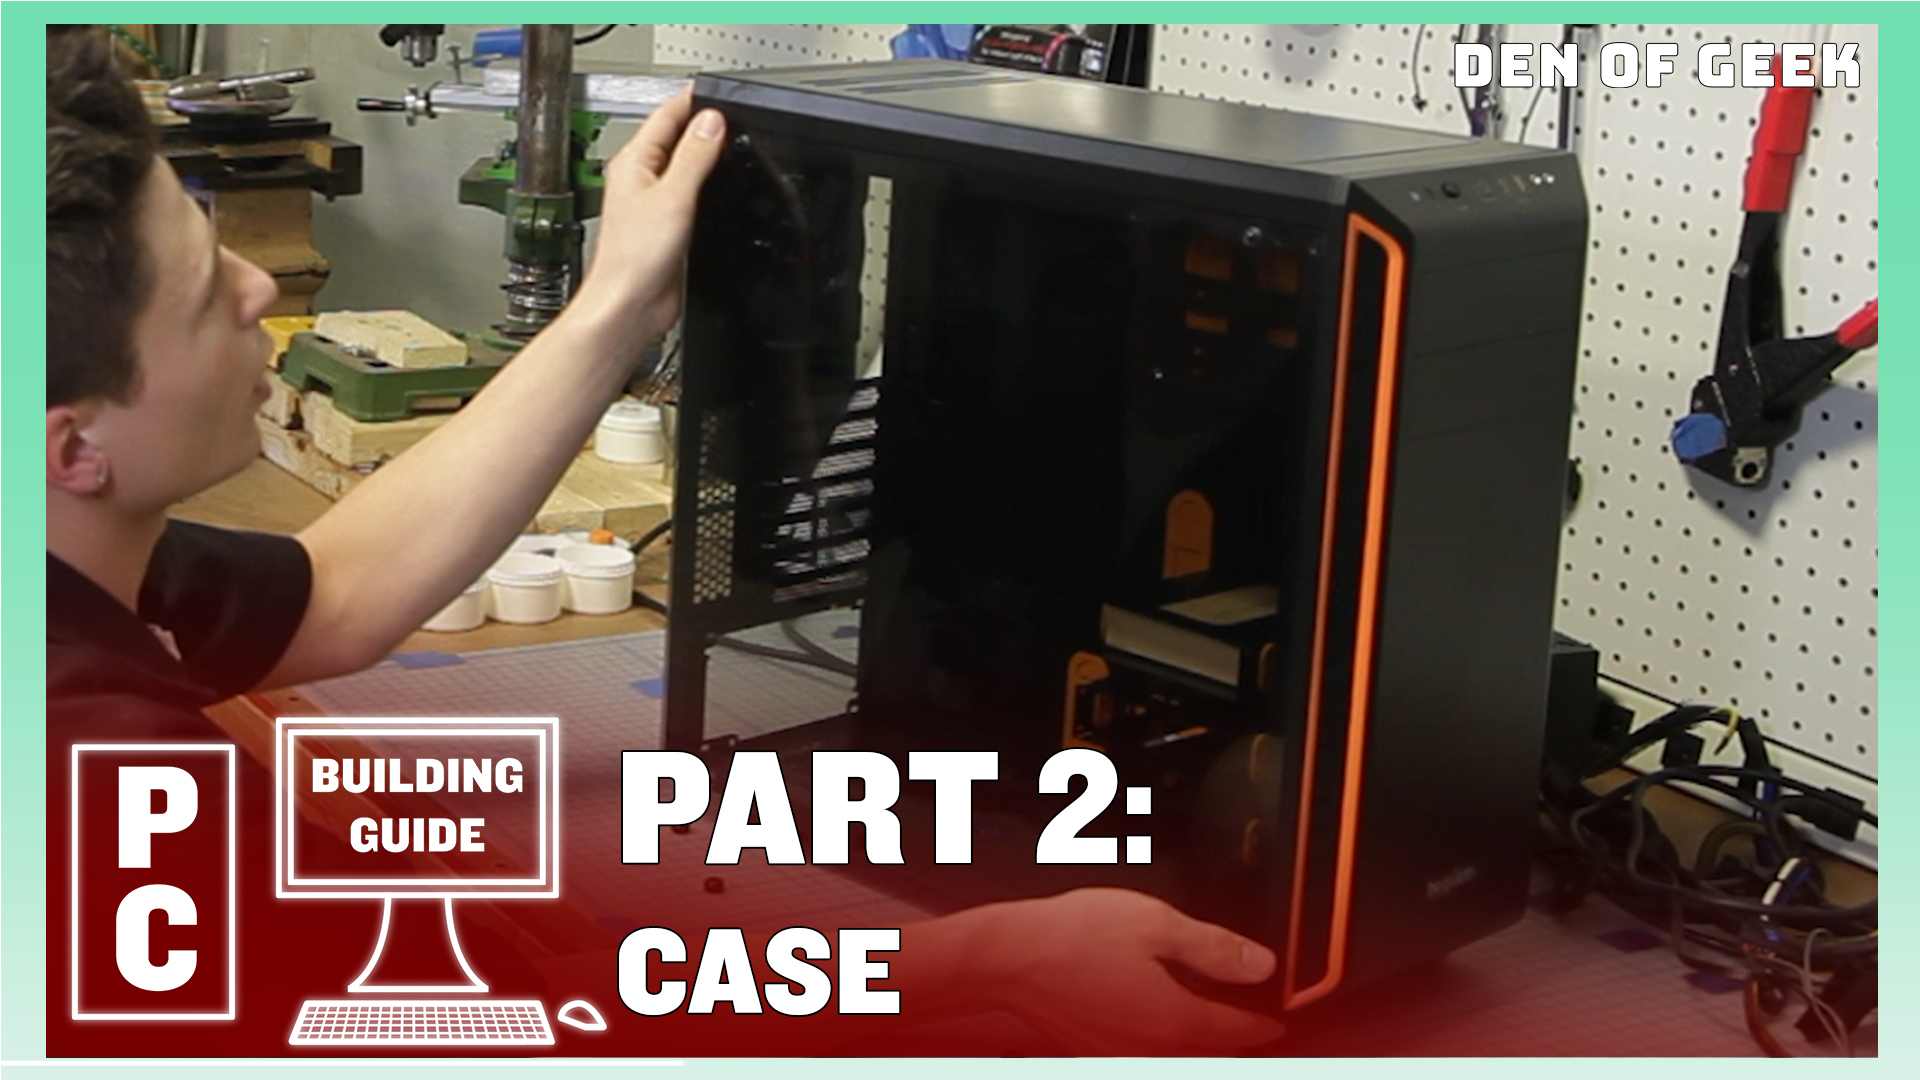 Den of Geek PC Building Guide: Case (Part 2)